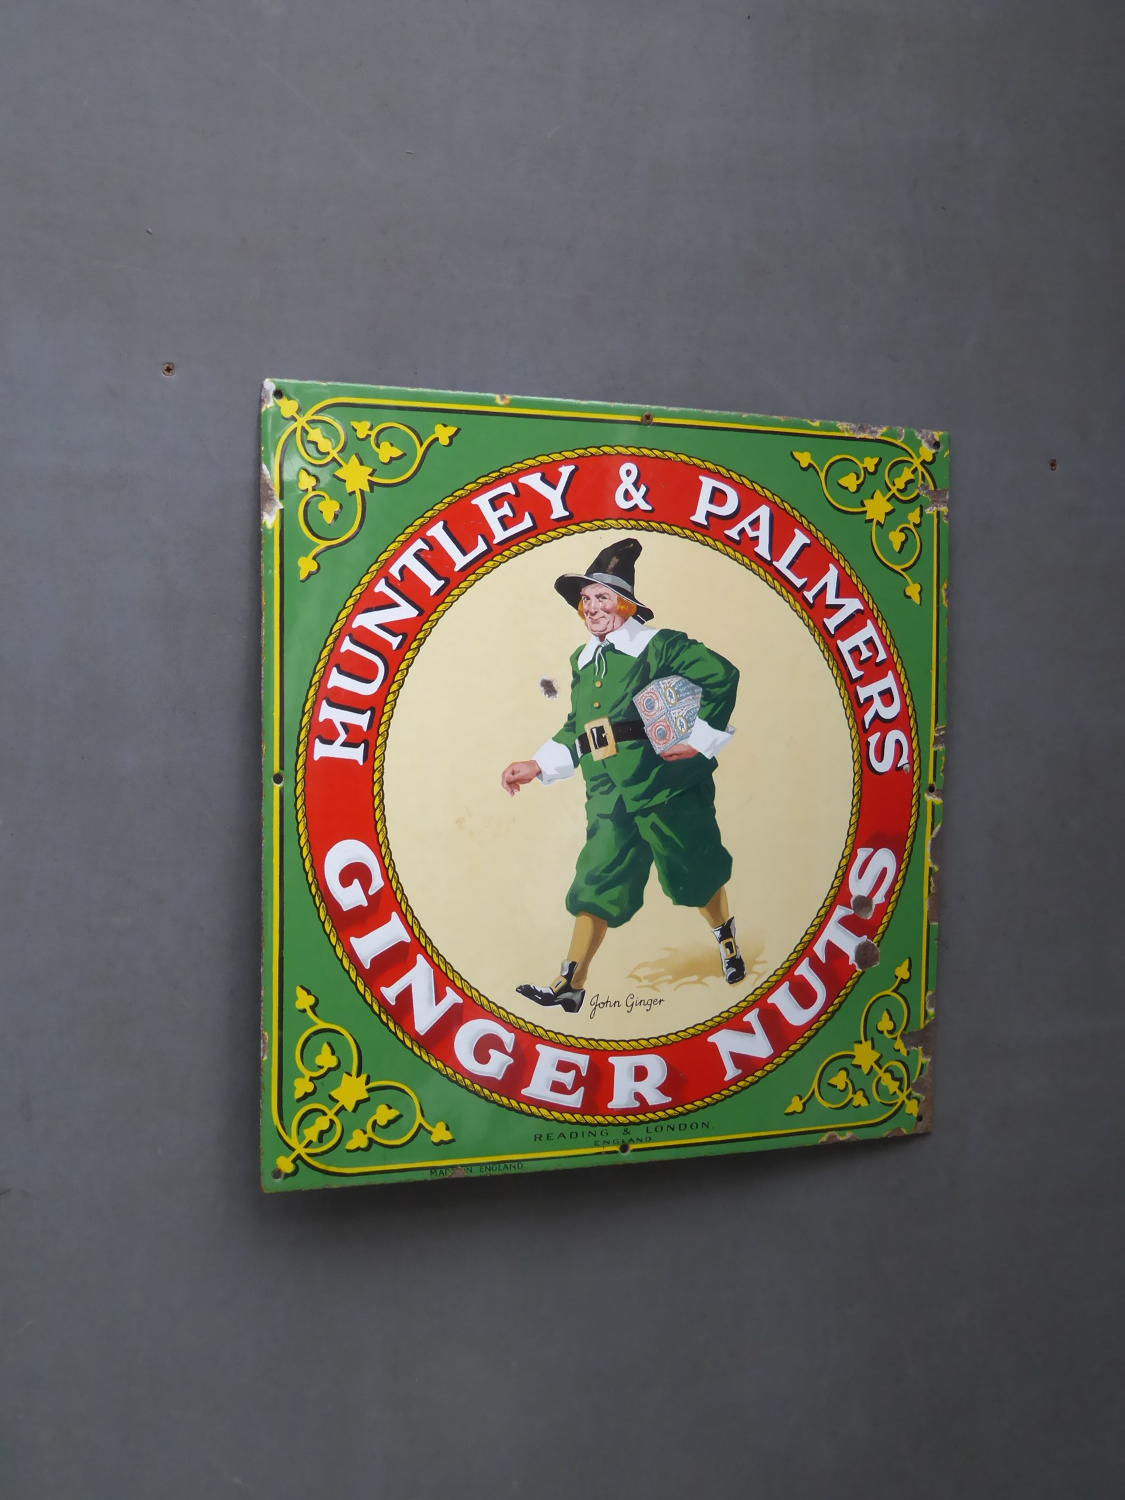 Huntley & Palmer's Enamel Sign